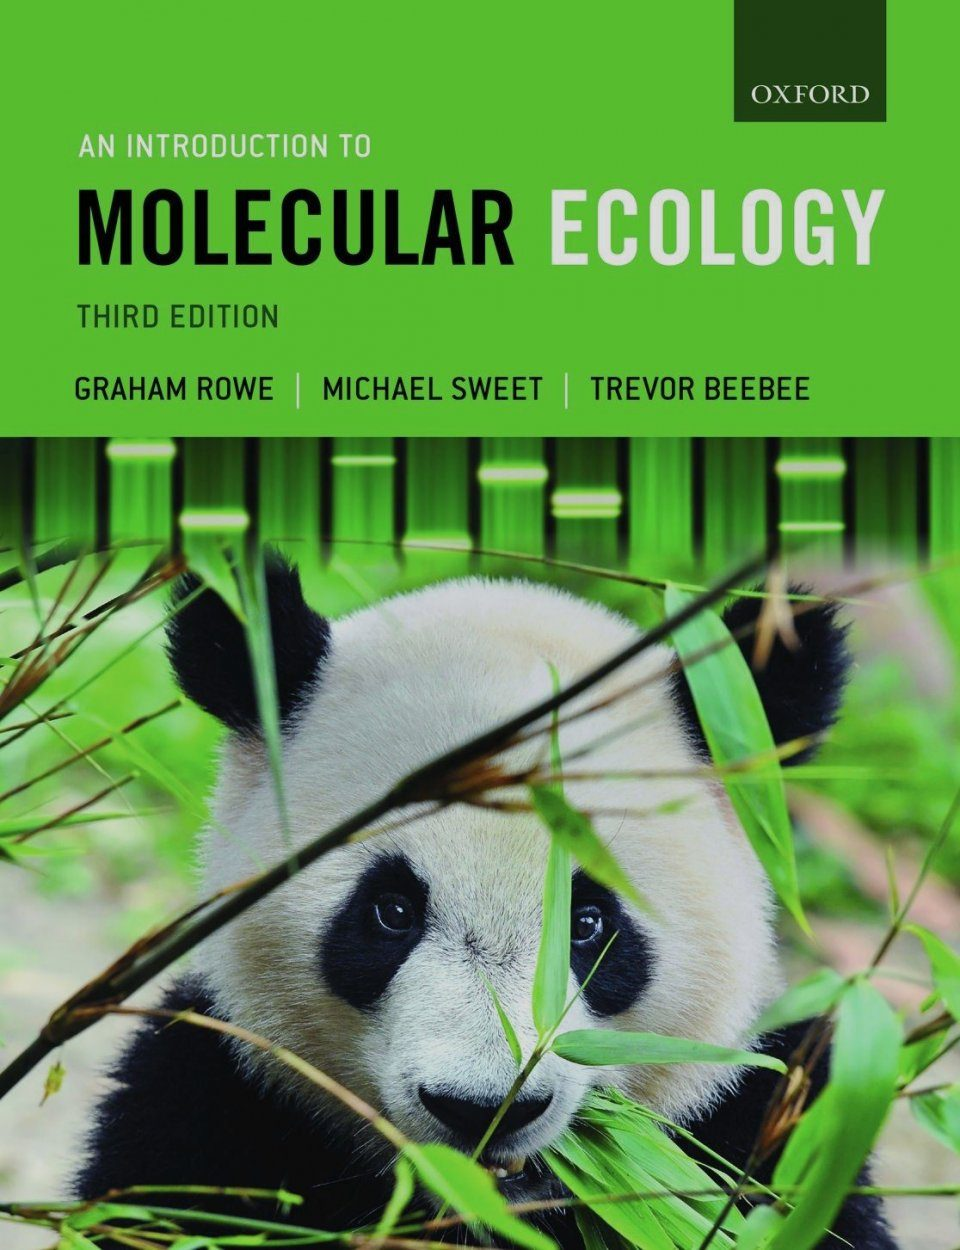 An Introduction to Molecular Ecology